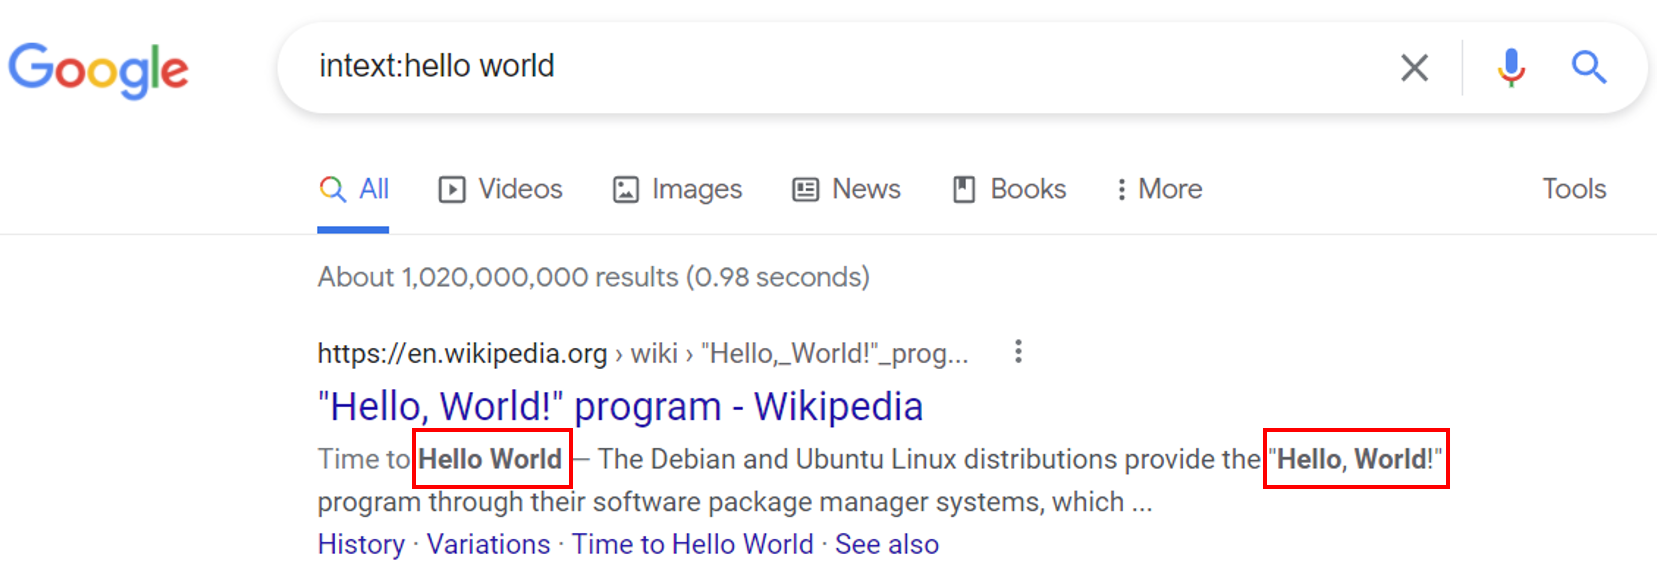 google-search-with-intext